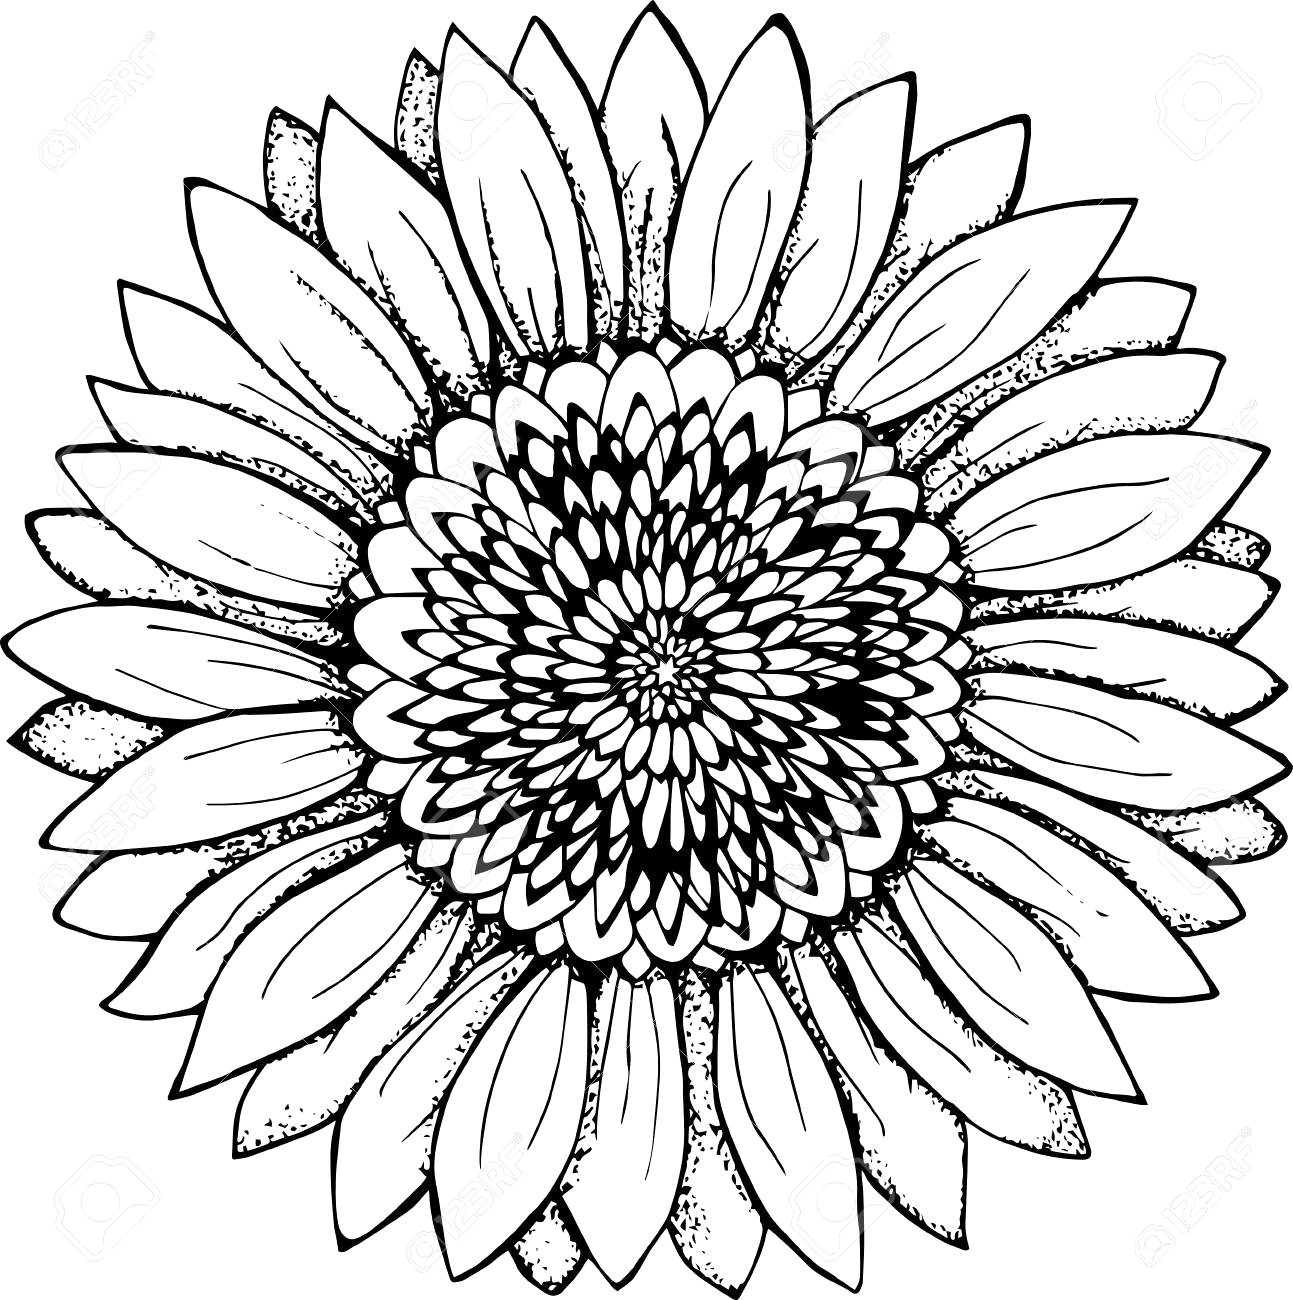 drawing of a sunflower sunflower vector free at getdrawings free download drawing sunflower of a